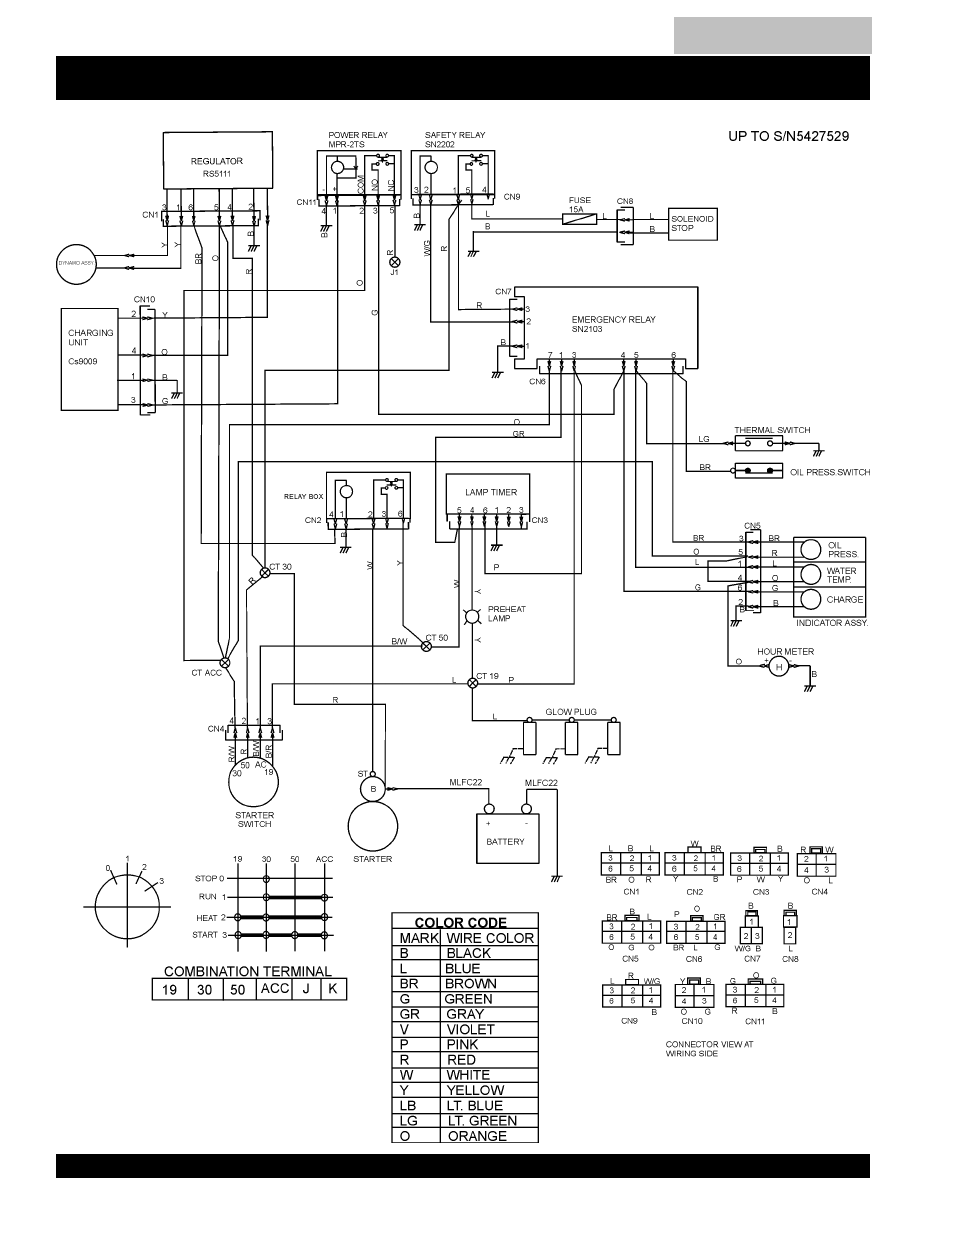 medium resolution of engine wiring diagrams 41 blw 400ssw engine wiring diagram multiquip mq